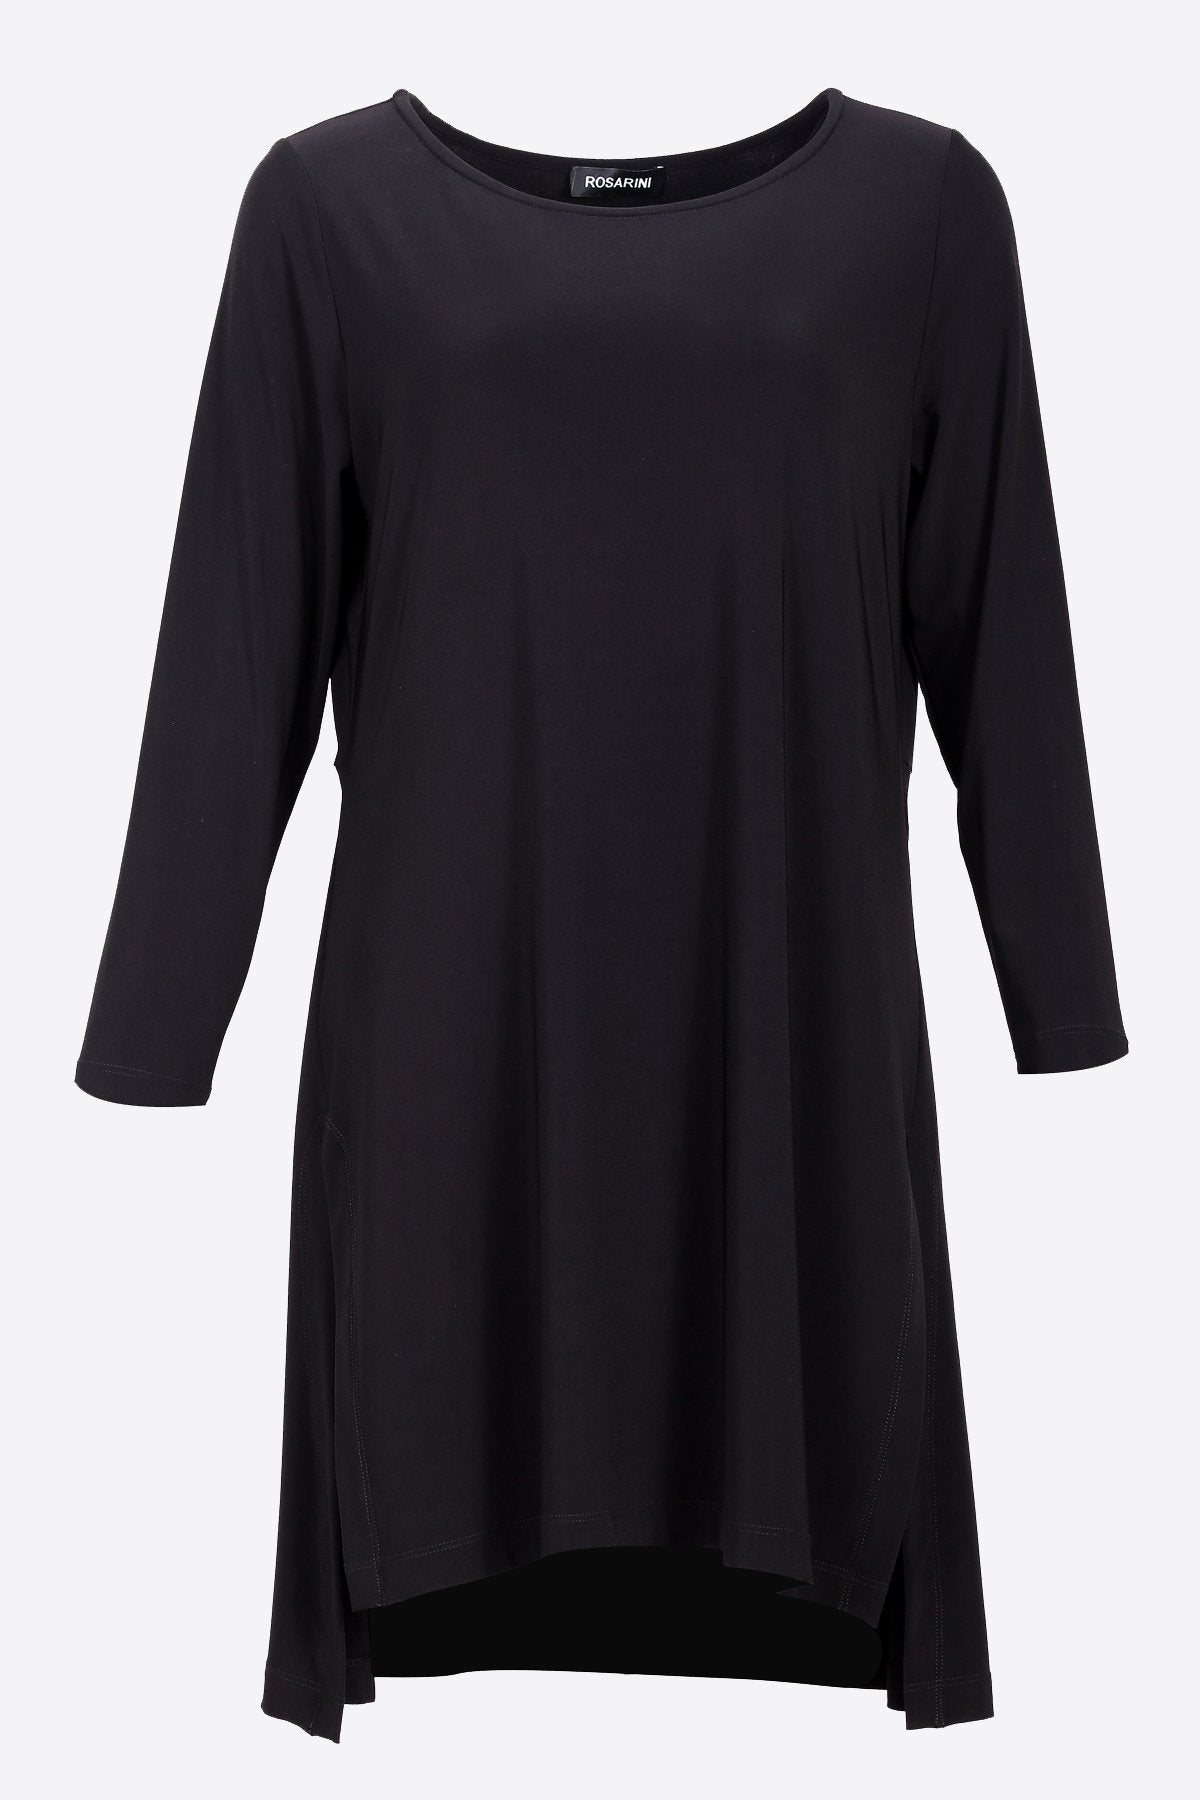 Hi Low Tunic with Side Splits (Plus Size) - Women's Clothing -ROSARINI